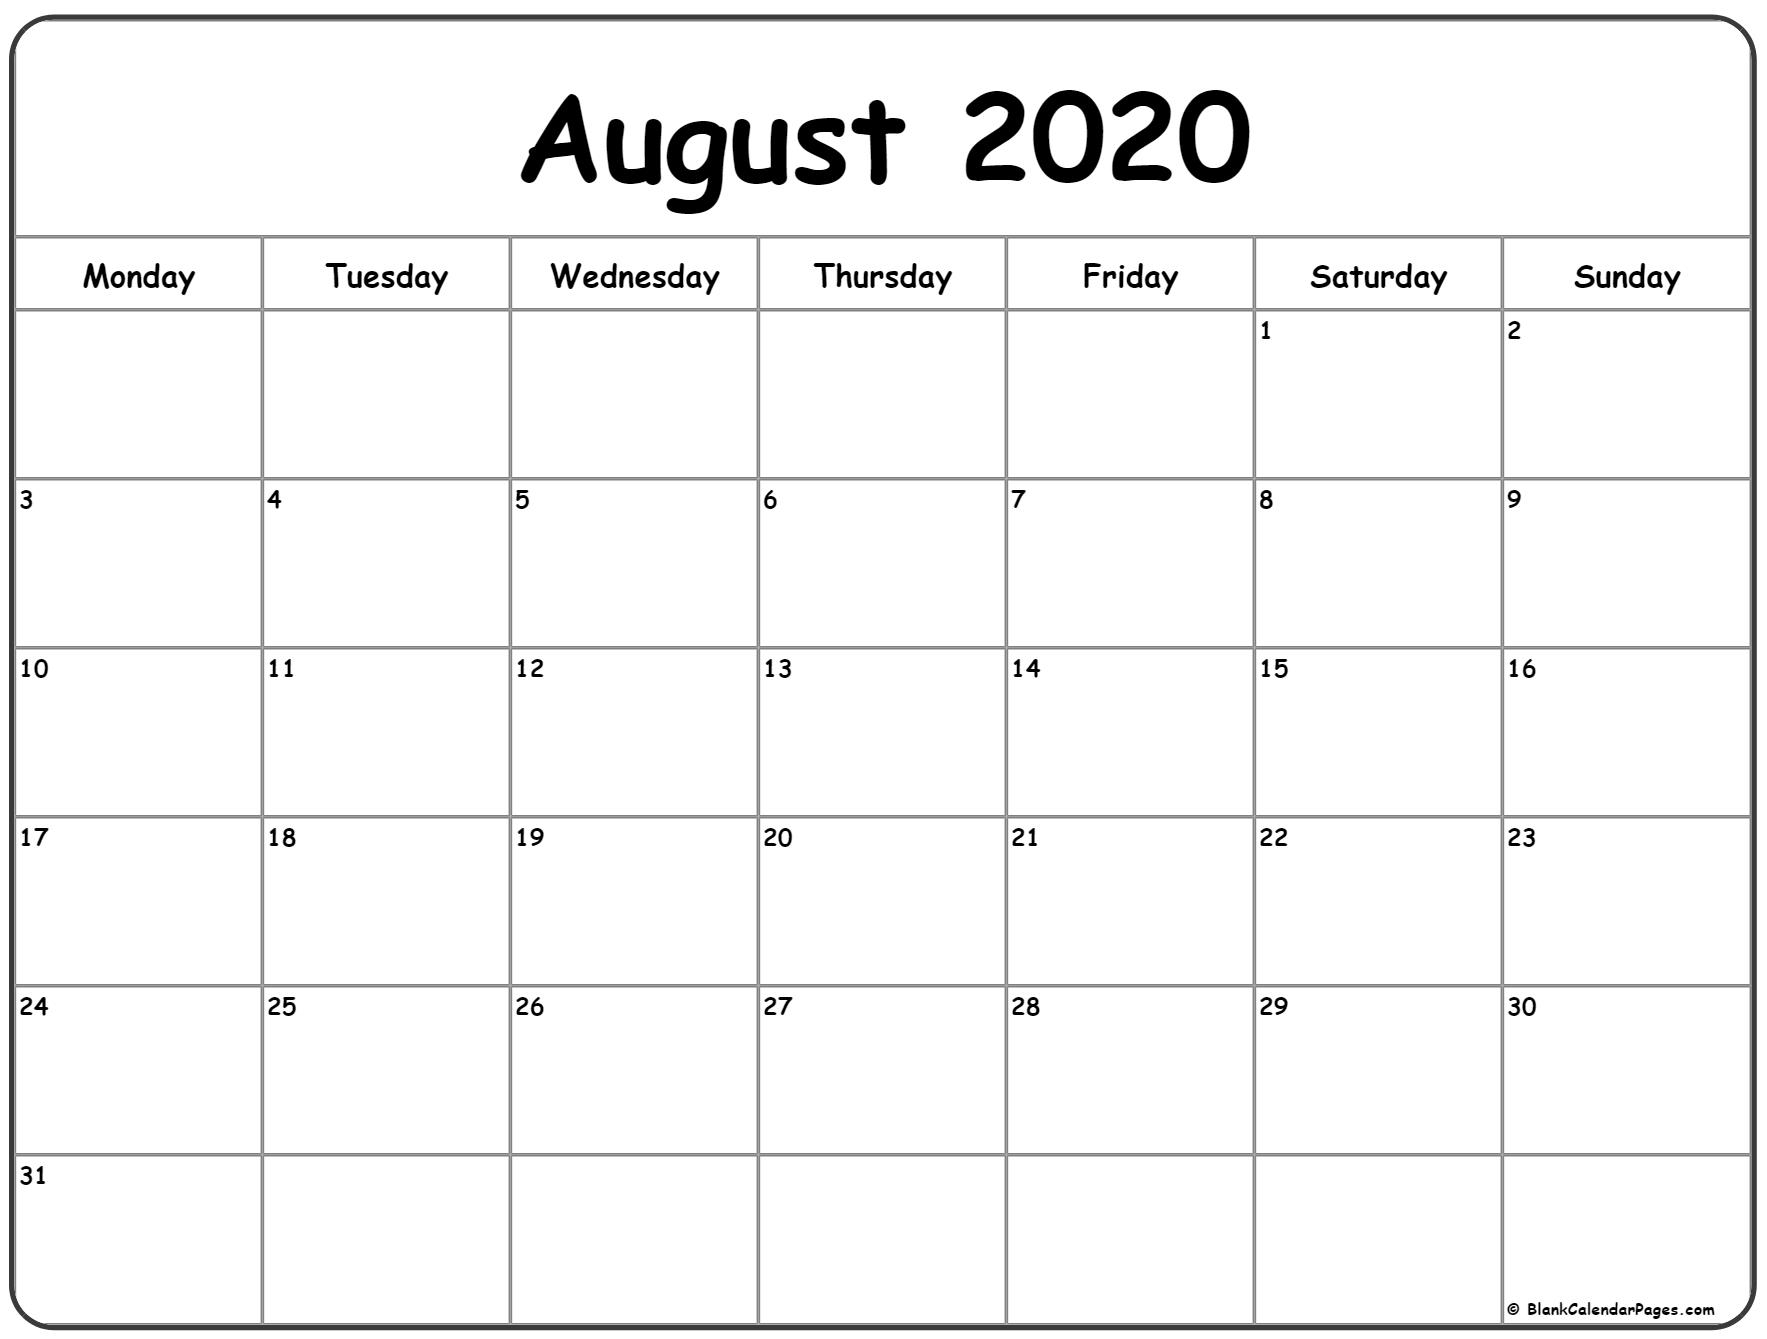 August 2020 Monday Calendar | Monday To Sunday within Monday To Sunday Calendar